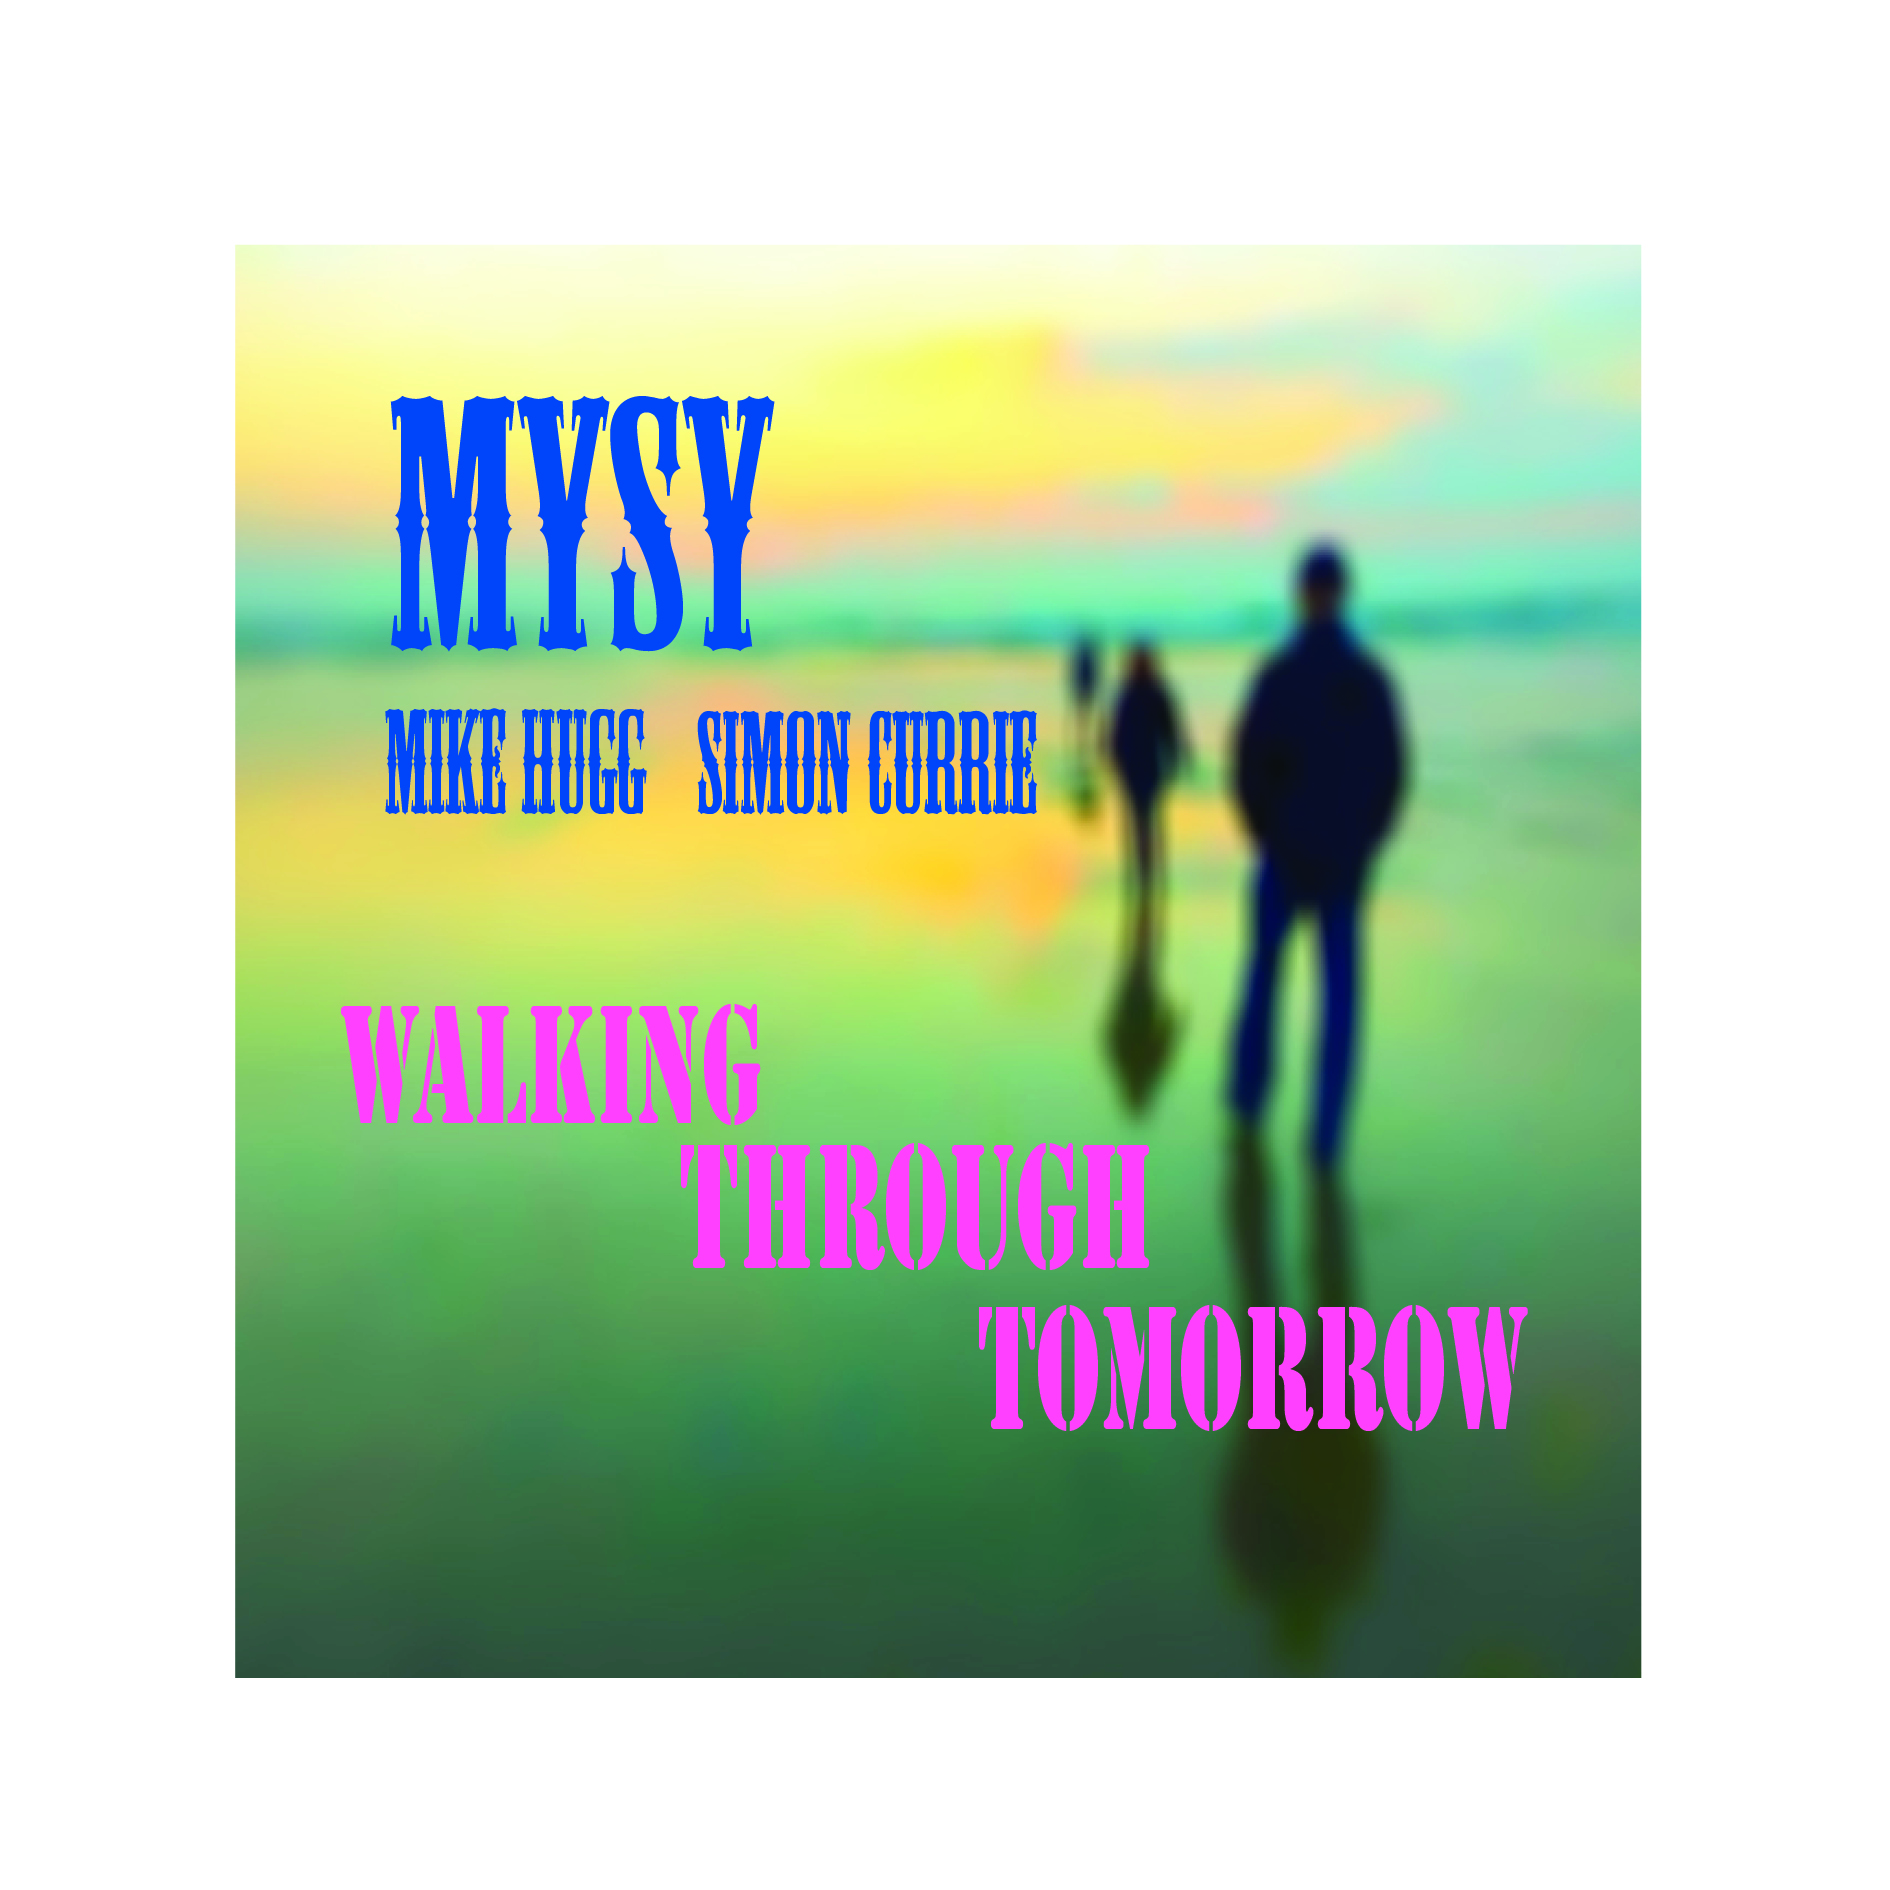 MYSY - Mike Hugg & Simon Currie \'Walking Through Tomorrow\'